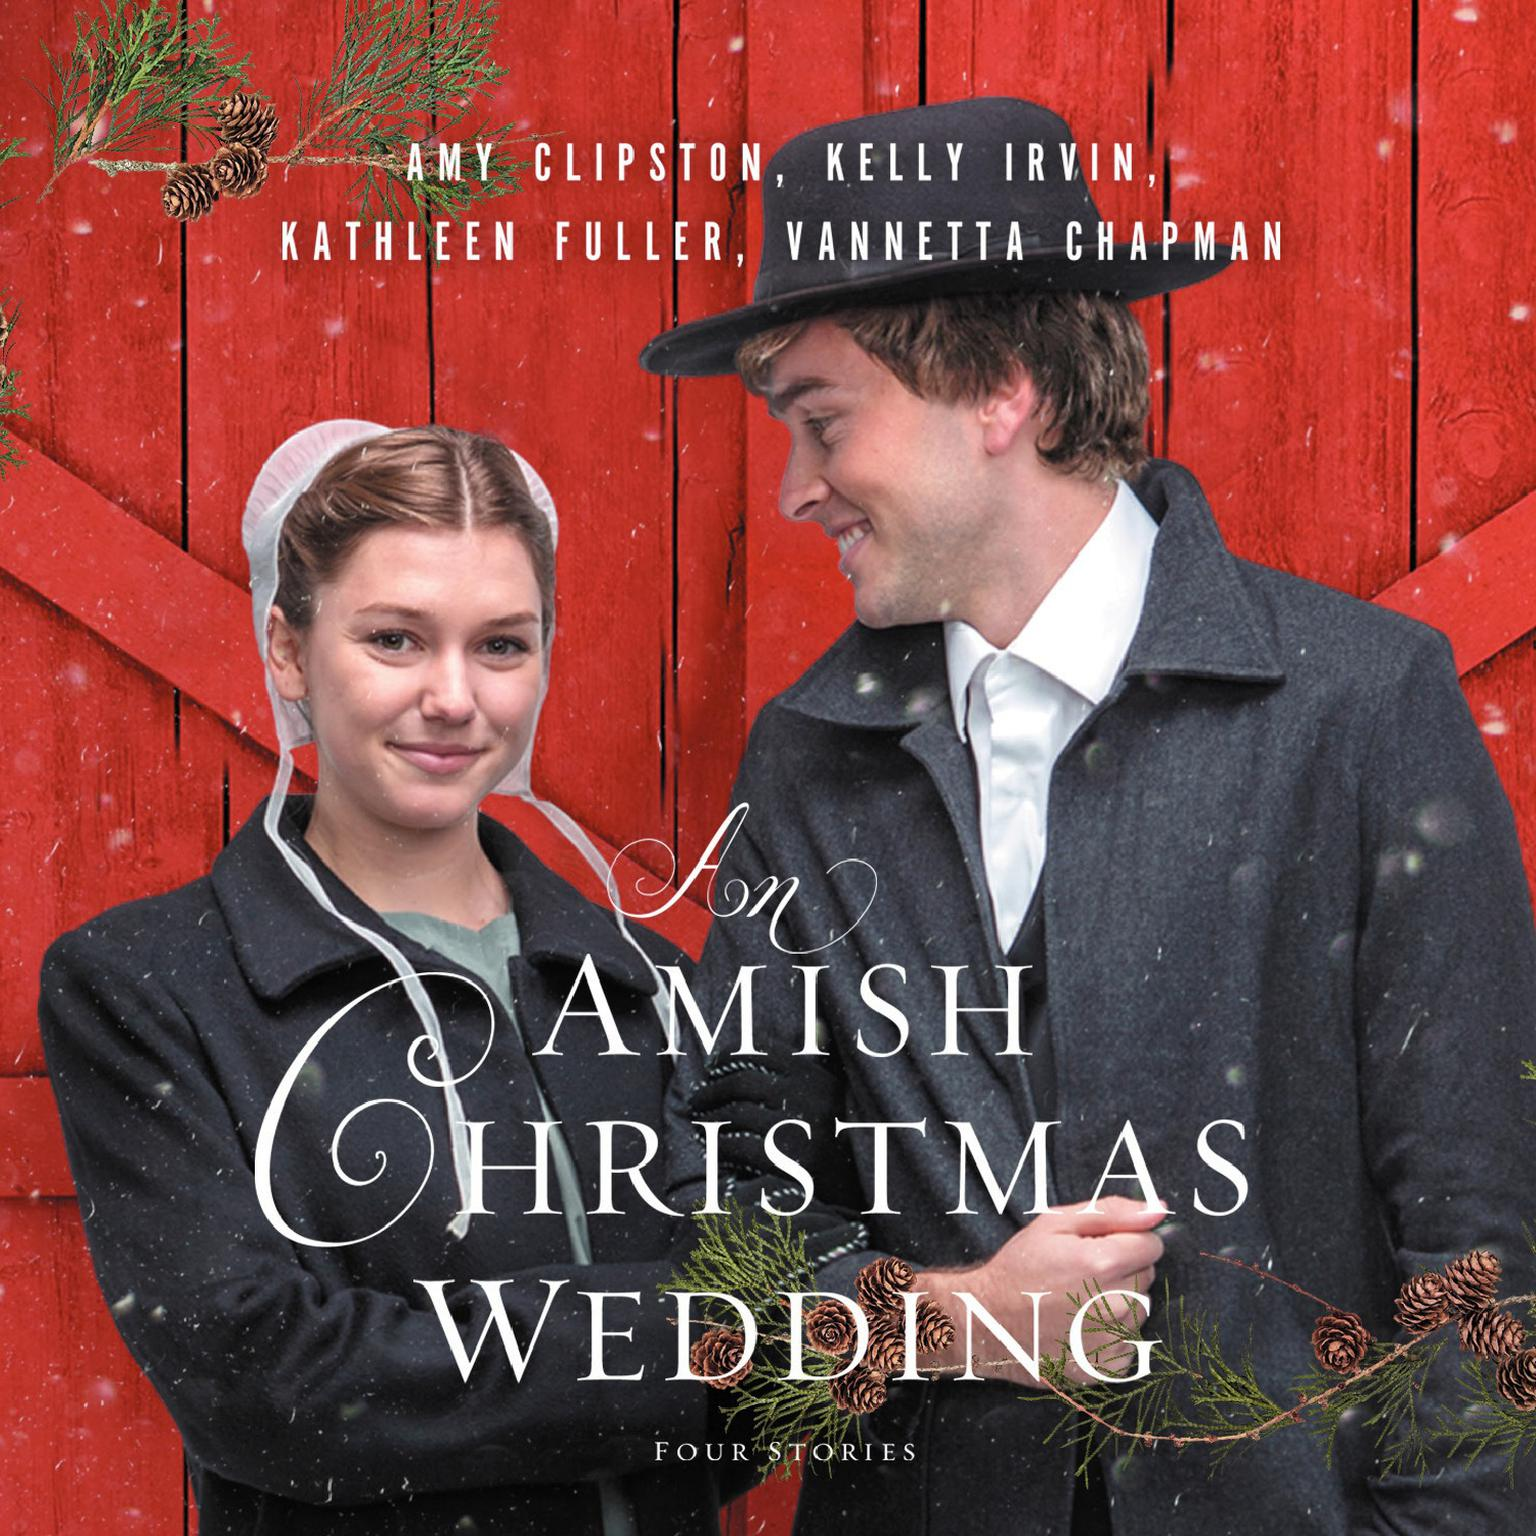 An Amish Christmas Wedding: Four Stories Audiobook, by Amy Clipston